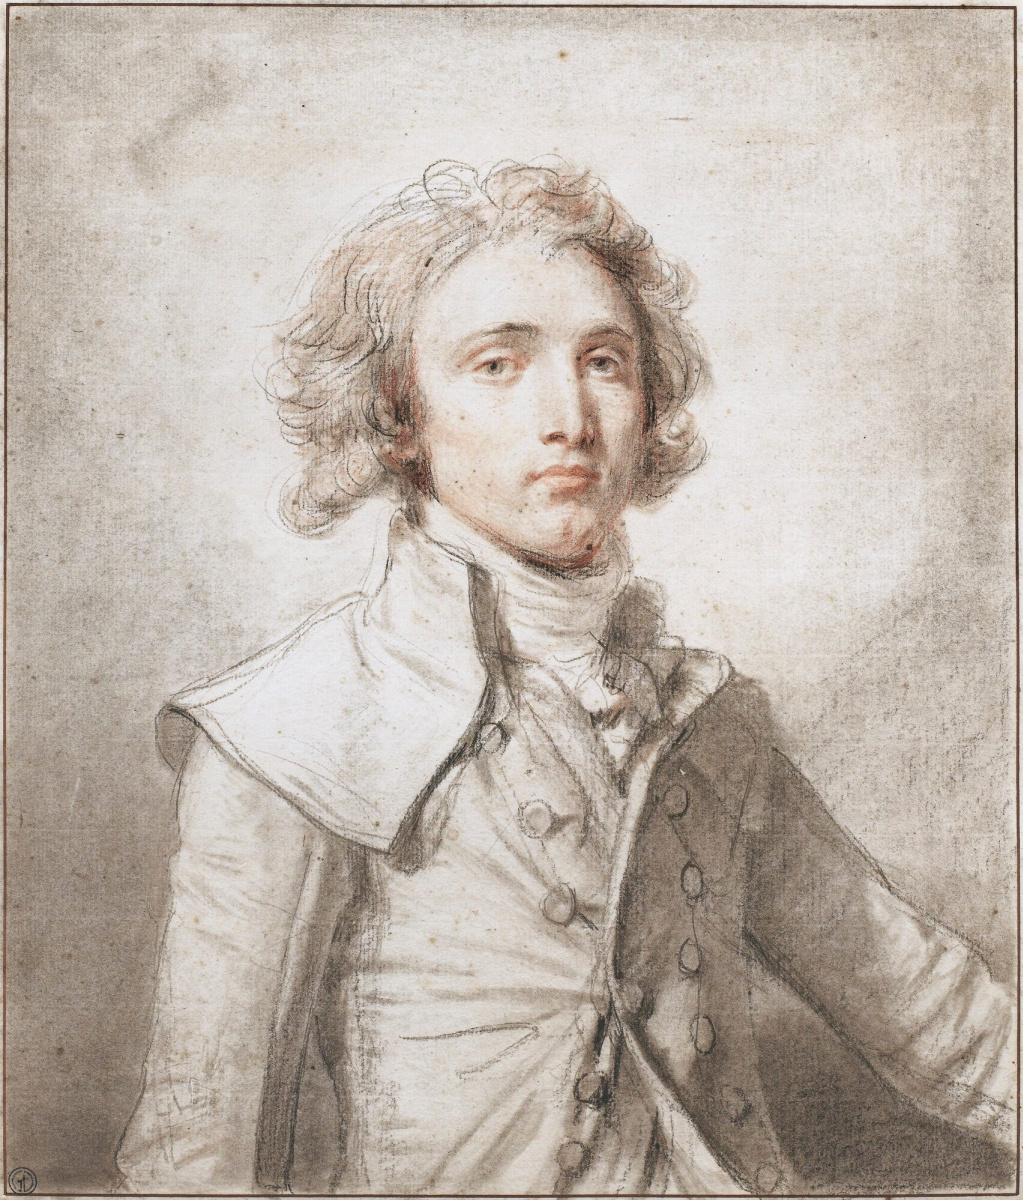 Jean-Baptiste Greuze. Portrait of a young gentleman